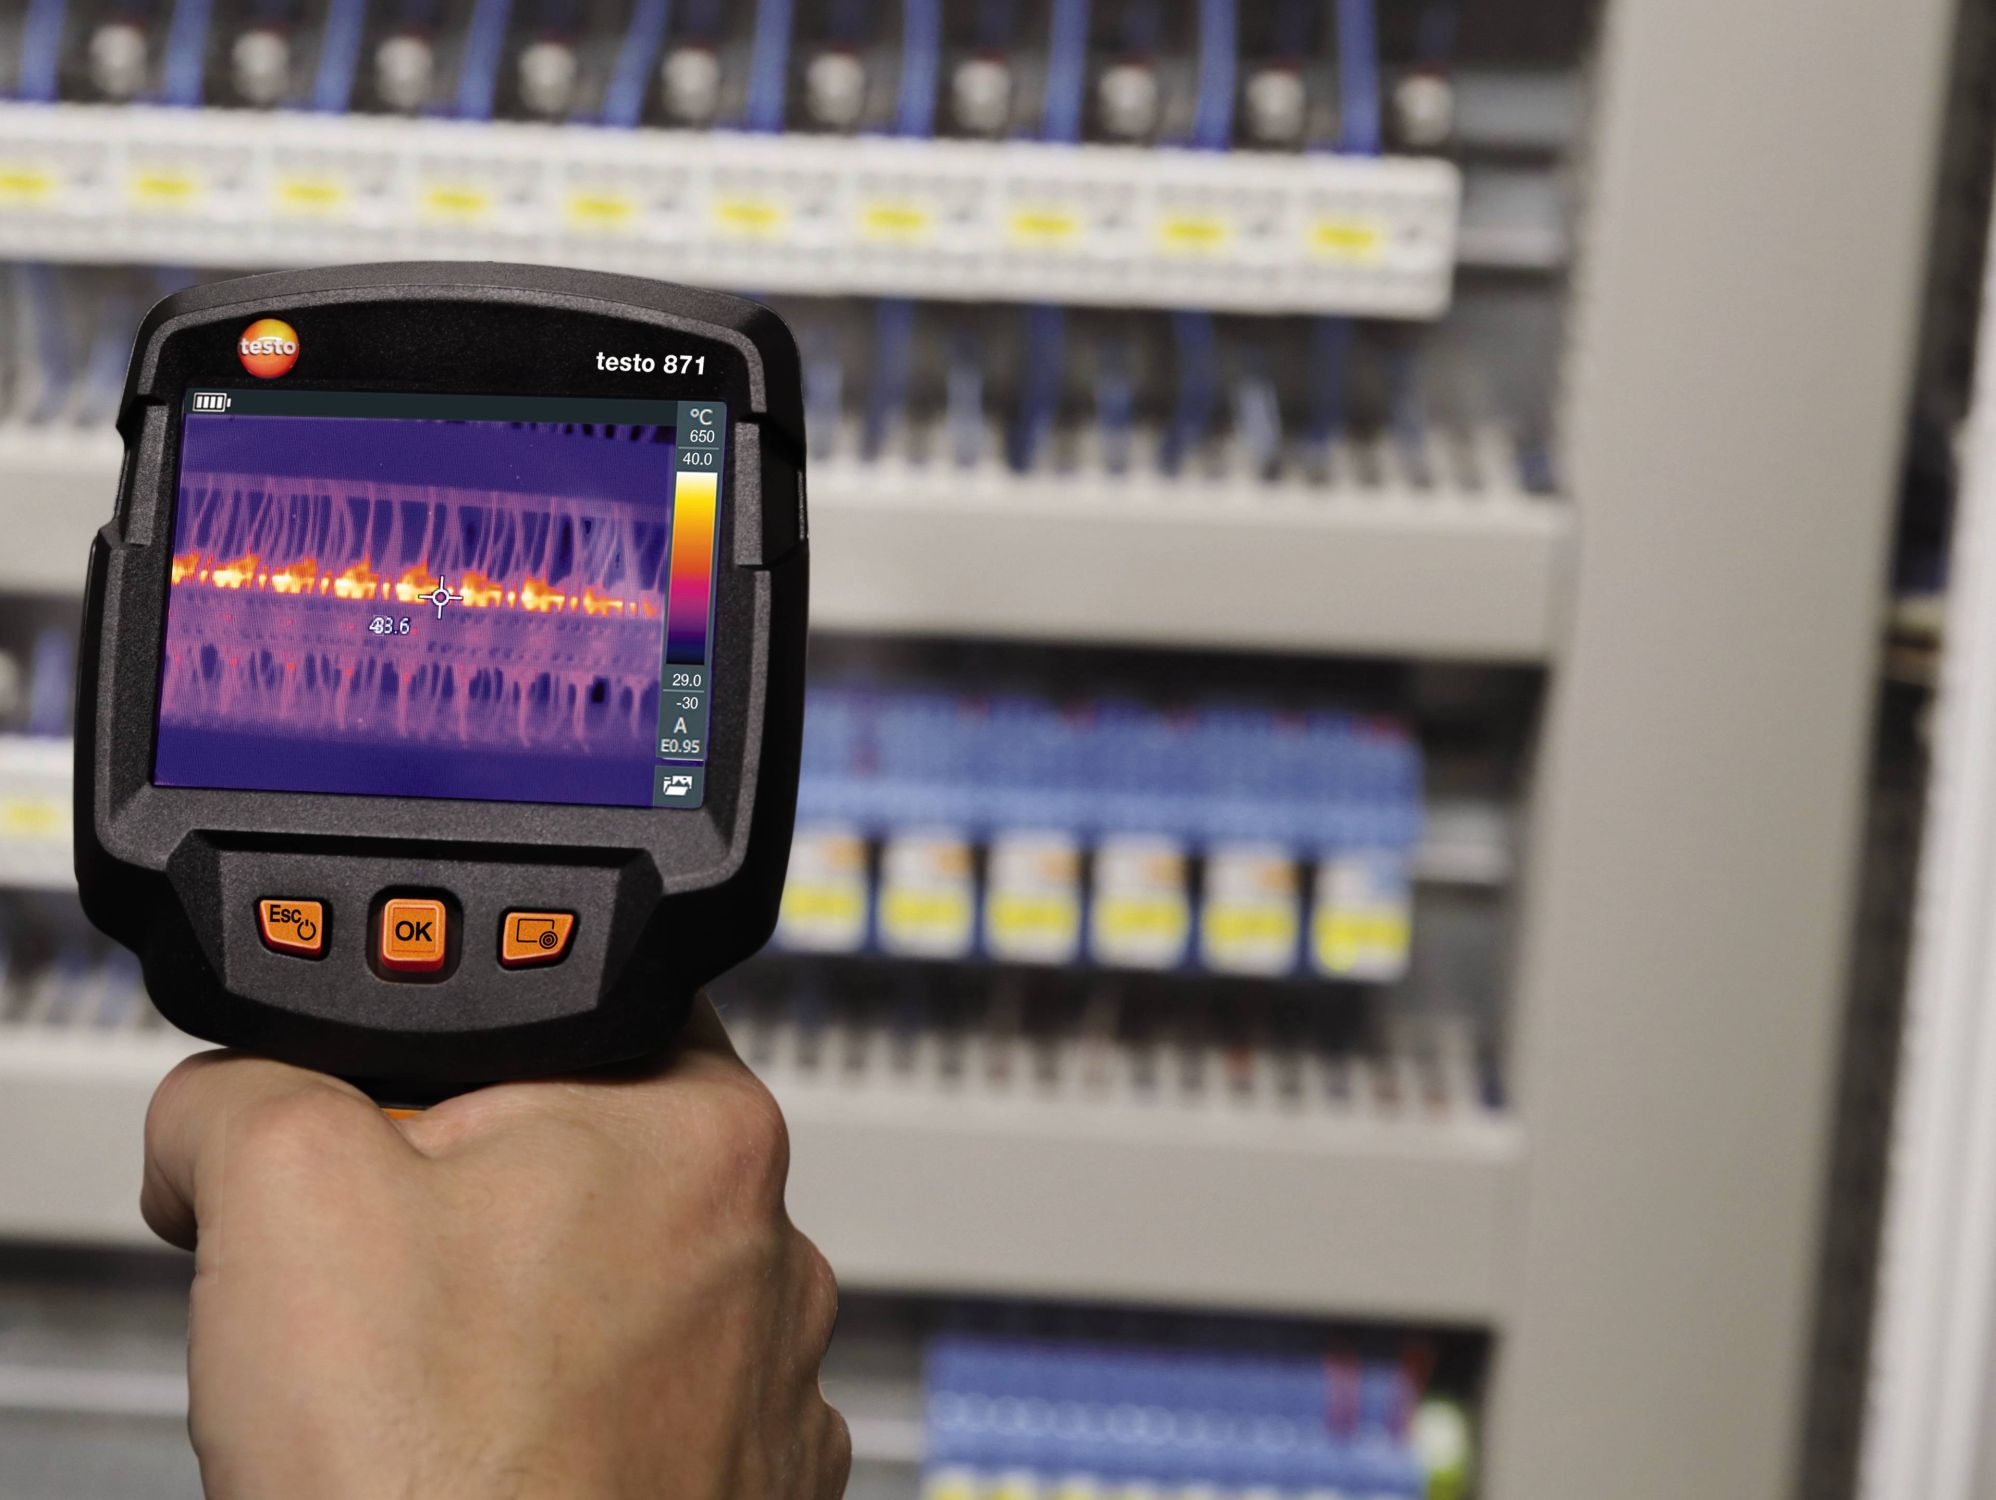 testo 871: Smart thermography for professional requirements.